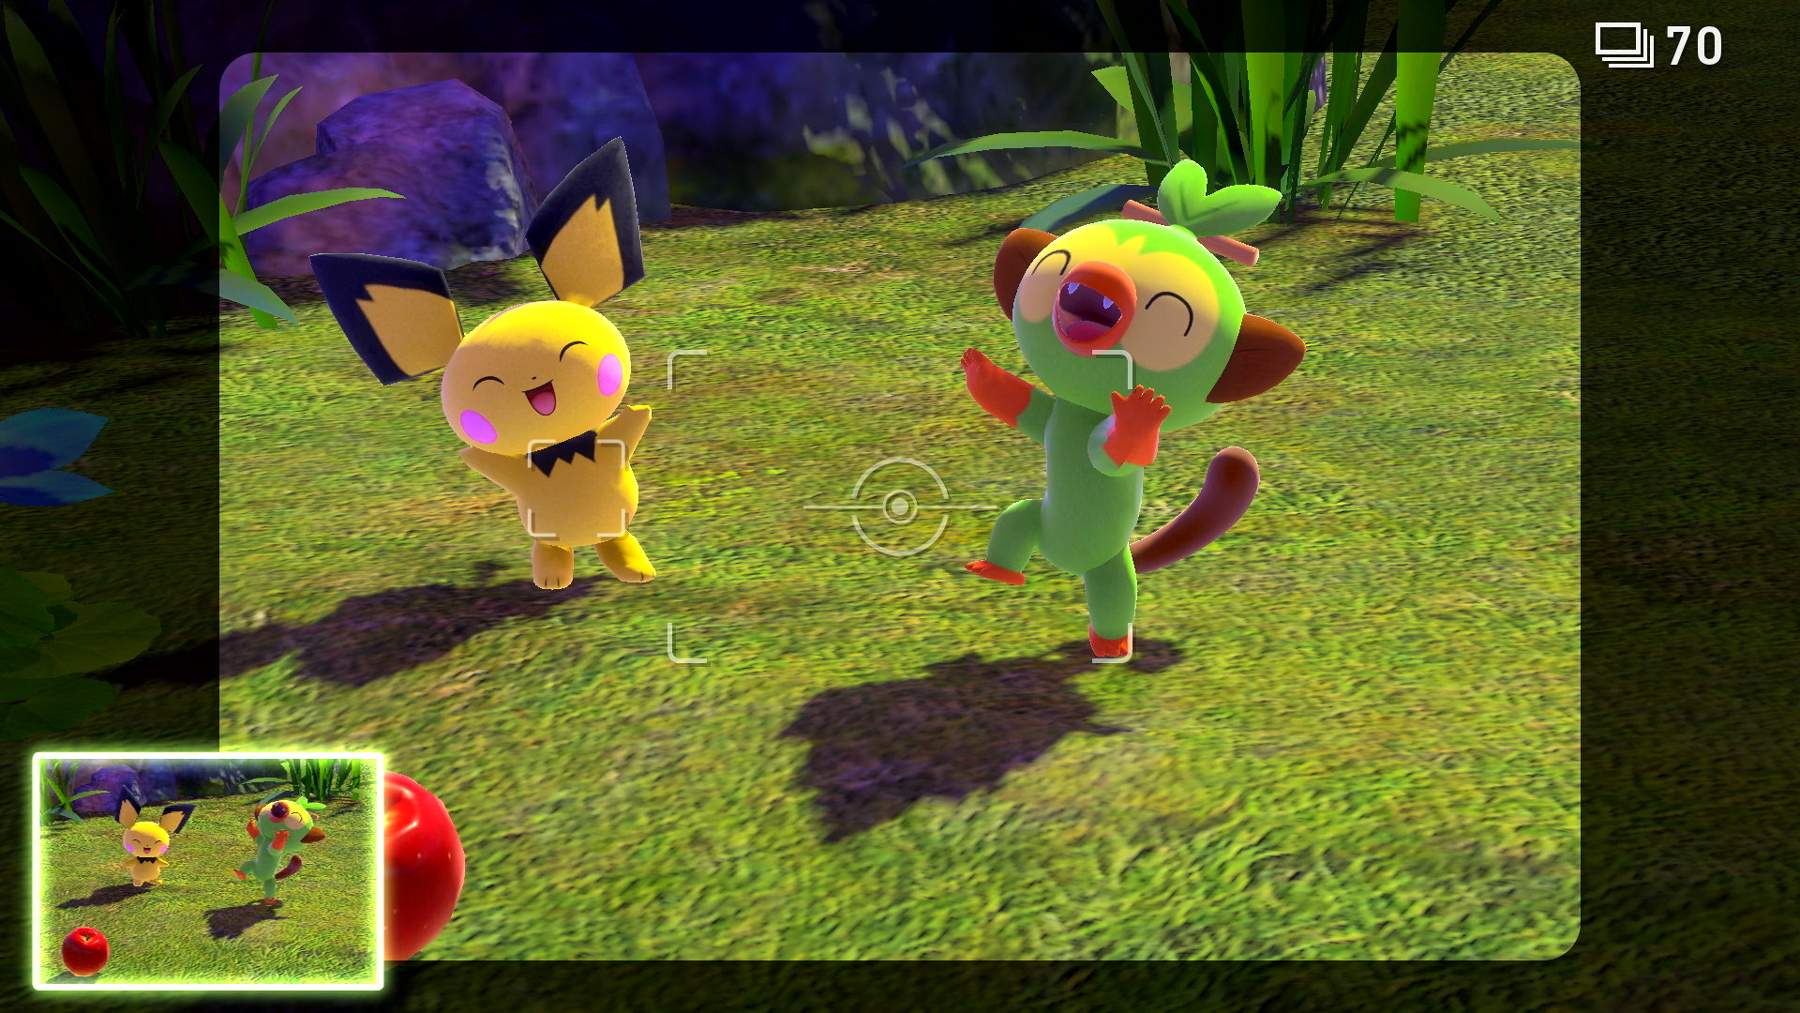 New Pokémon Snap' hits the Nintendo Switch on April 30 | Engadget